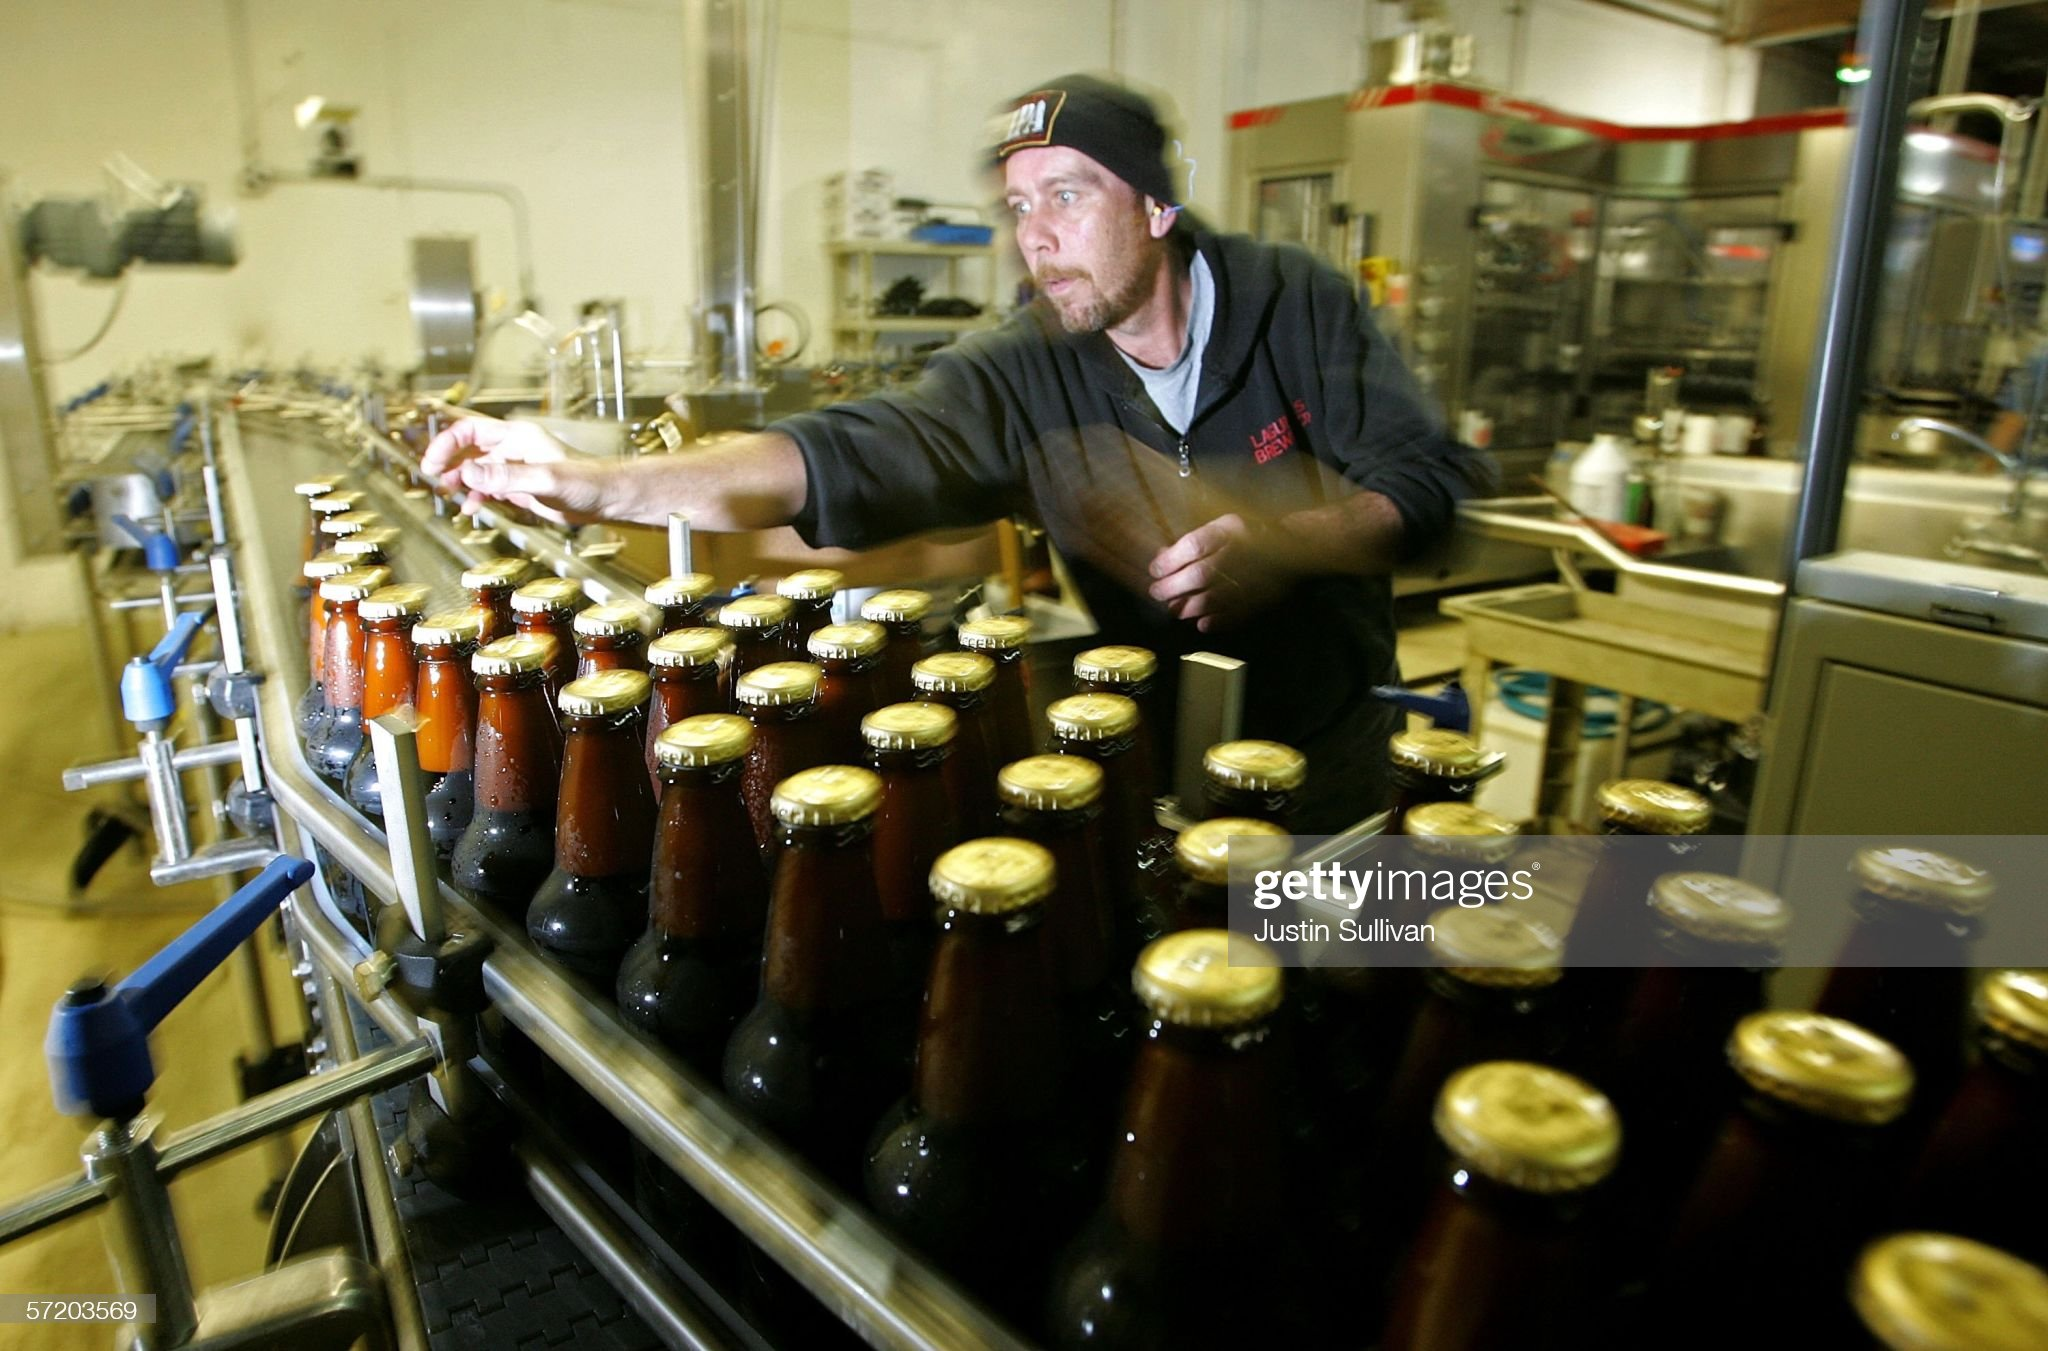 Microbrewery Sales Surge In the U.S. : Photo d'actualité